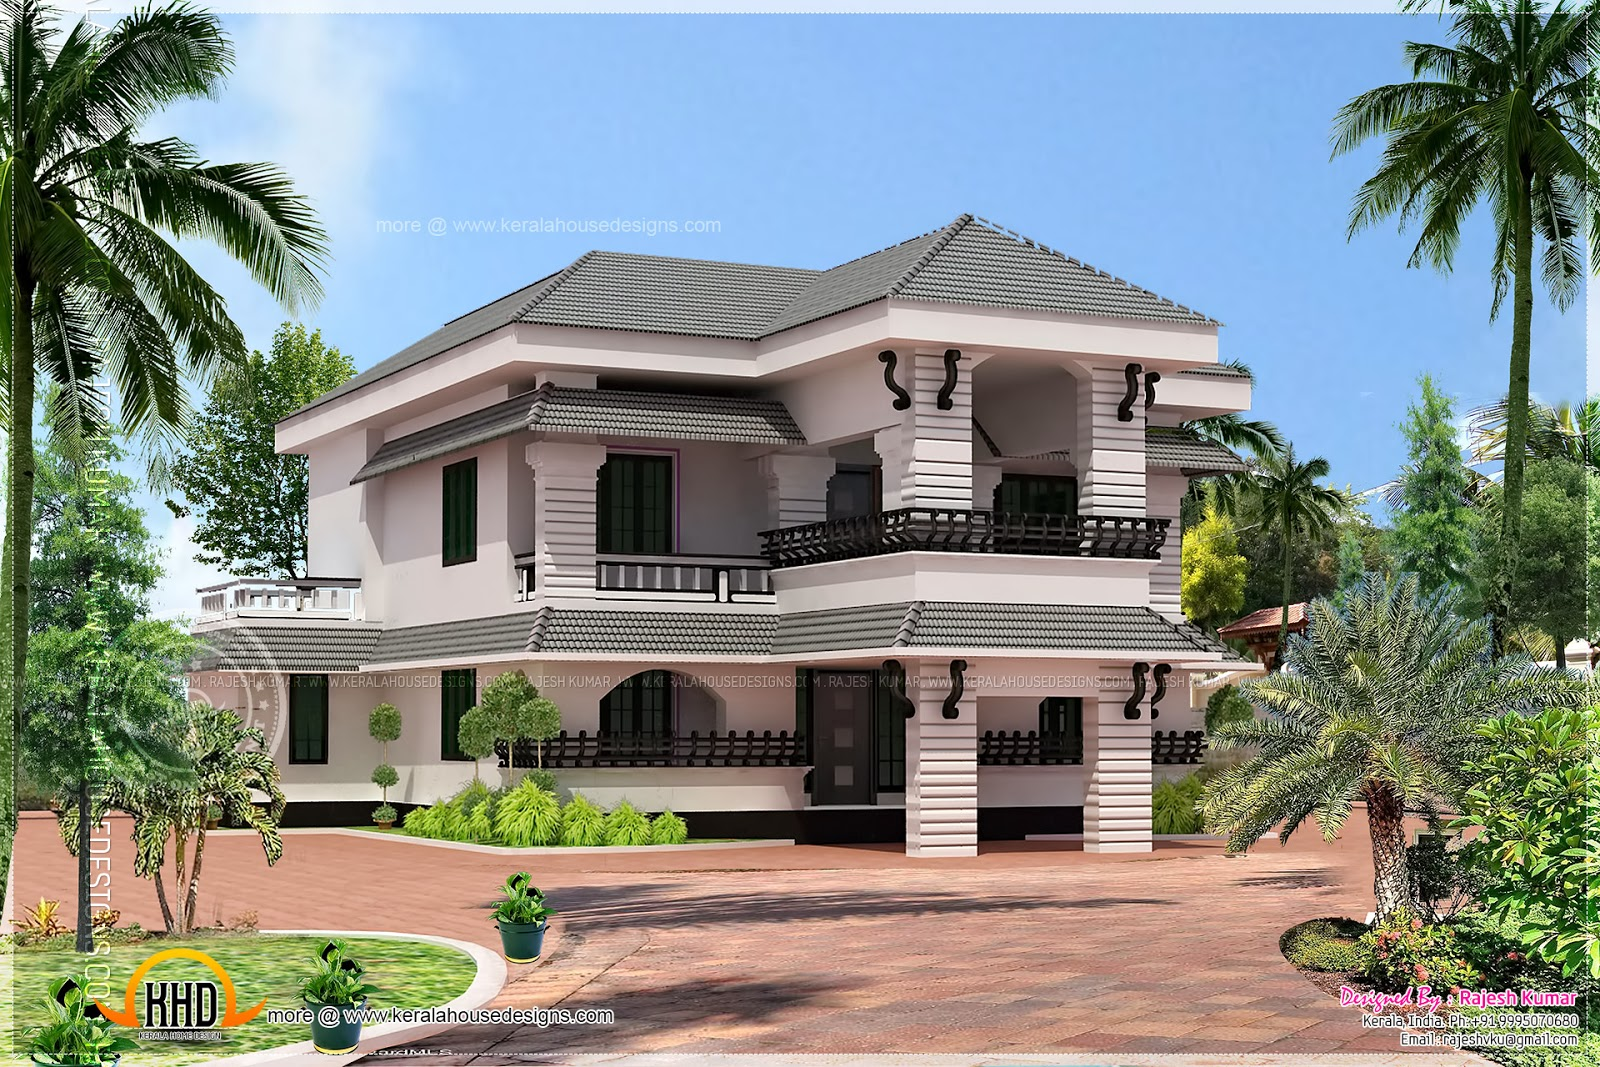 Malabar model home design kerala home design and floor plans for In home designer